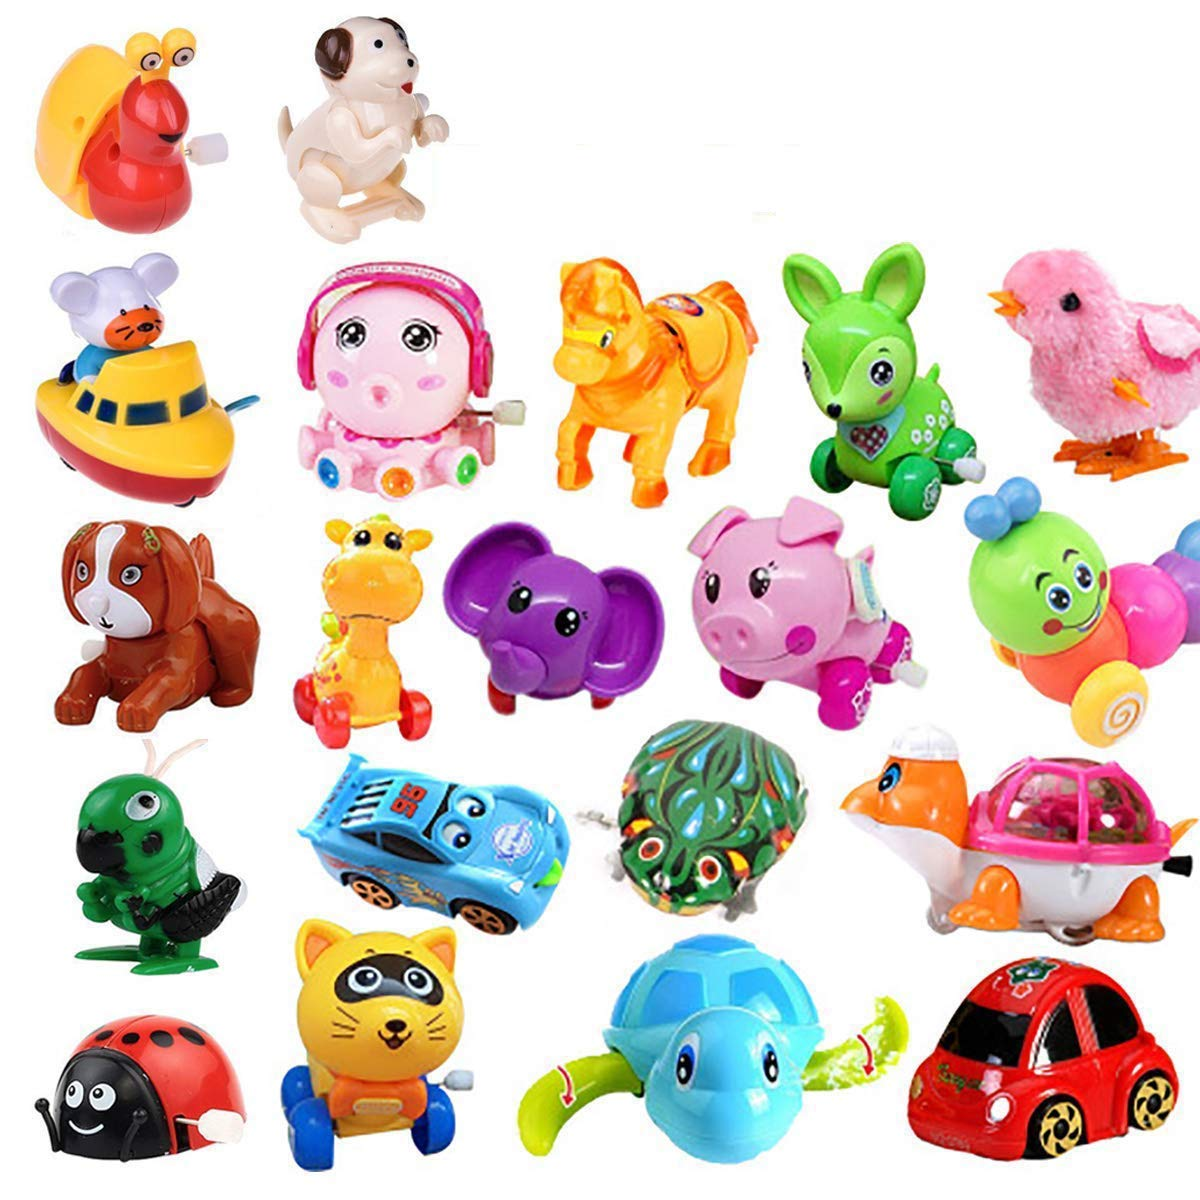 20 Pack Wind up Toys Assorted Mini Toy Animal for Children's Party Gifts Kids Birthdays Random Styles by Fstop Labs